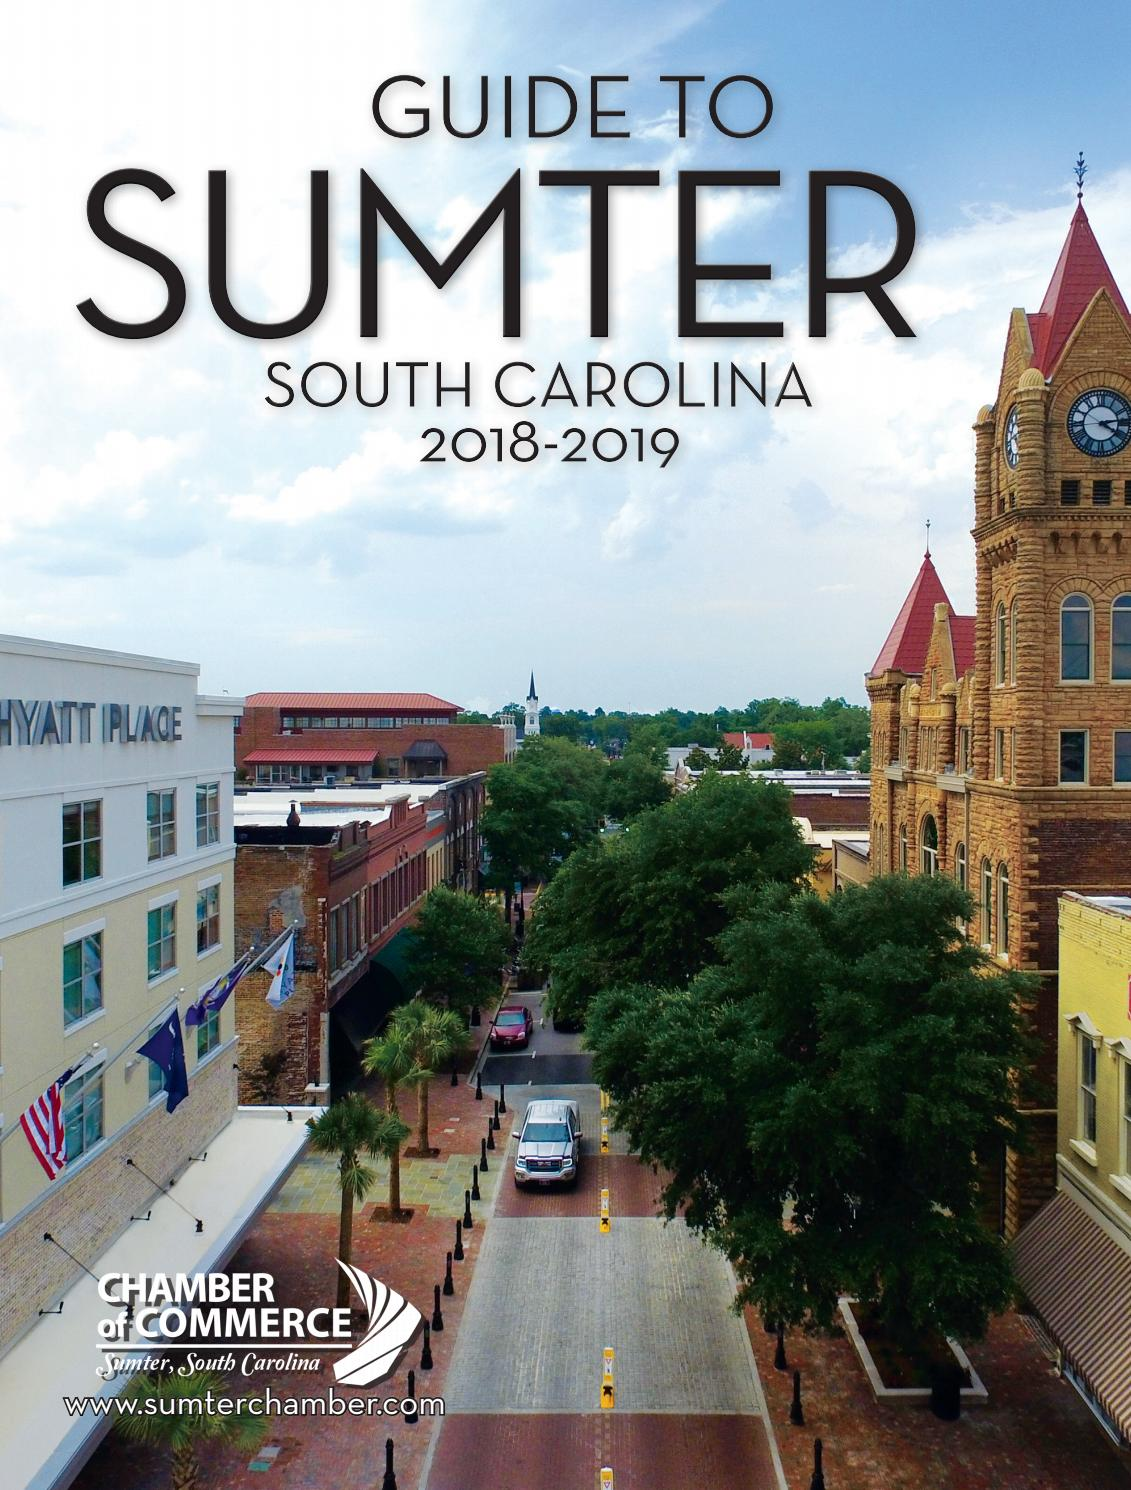 Infant Rolling Chair 2018 2019 Sumter Chamber Guide By The Sumter Item Issuu